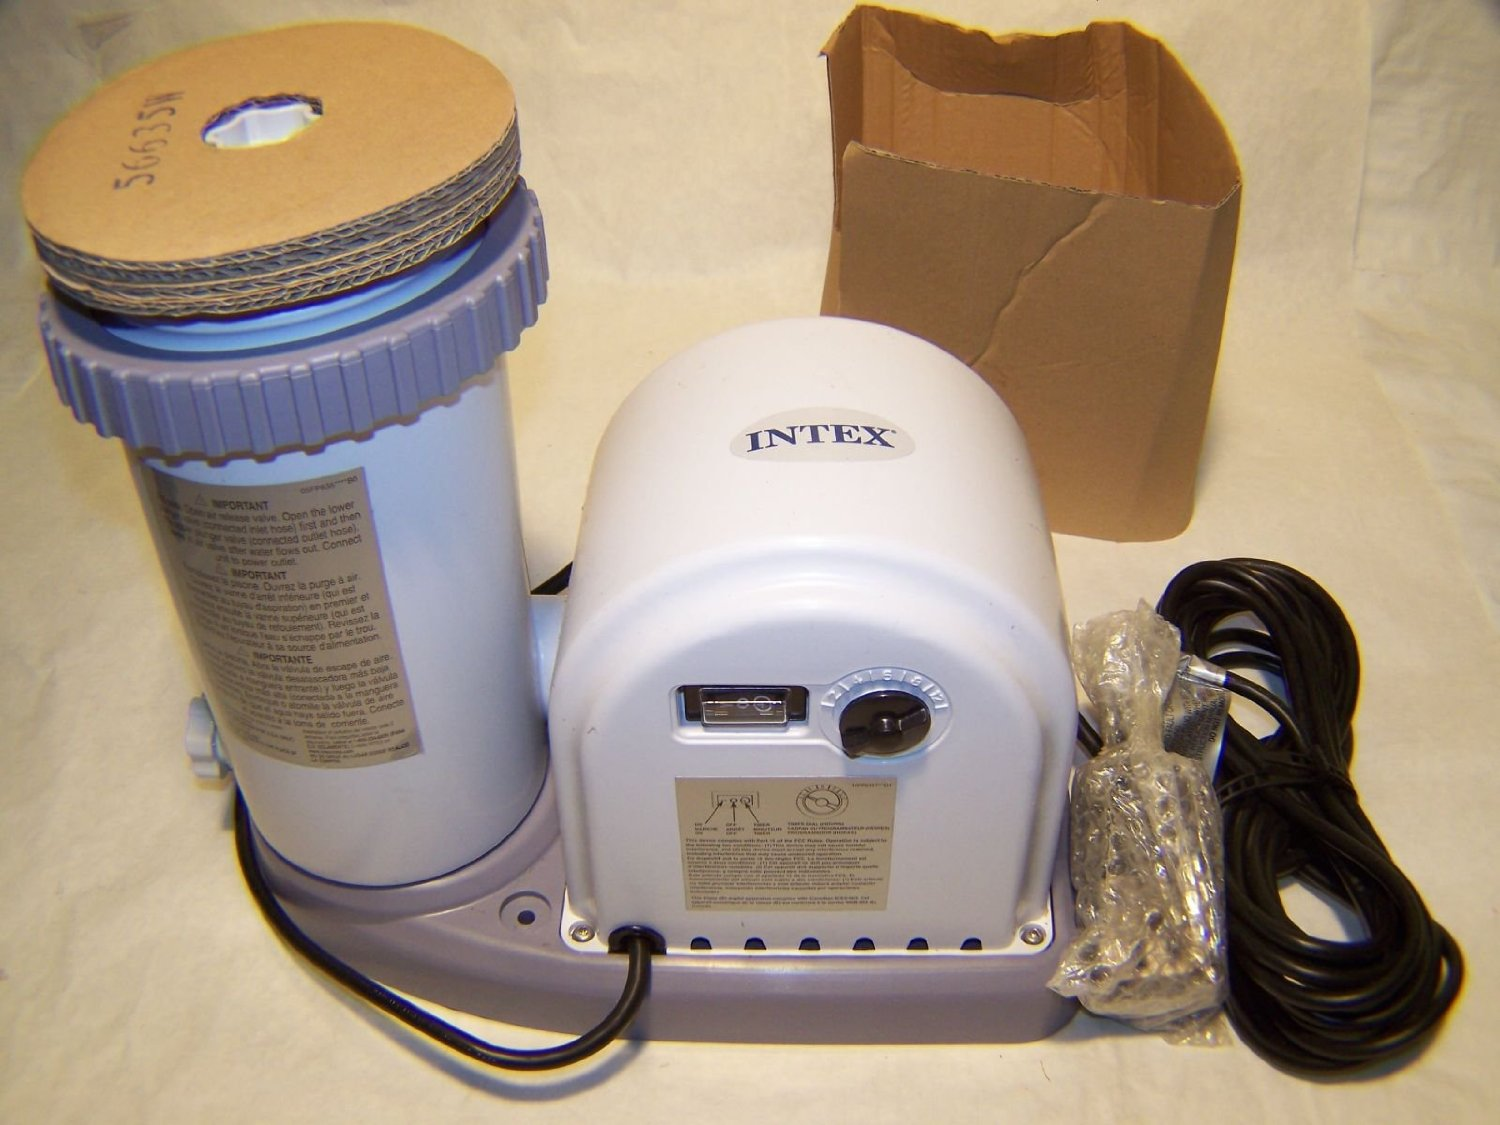 1500 gal/hr Intex Filter Pump, Krystal Clear Model 635 - Small Pump Upgrade P...